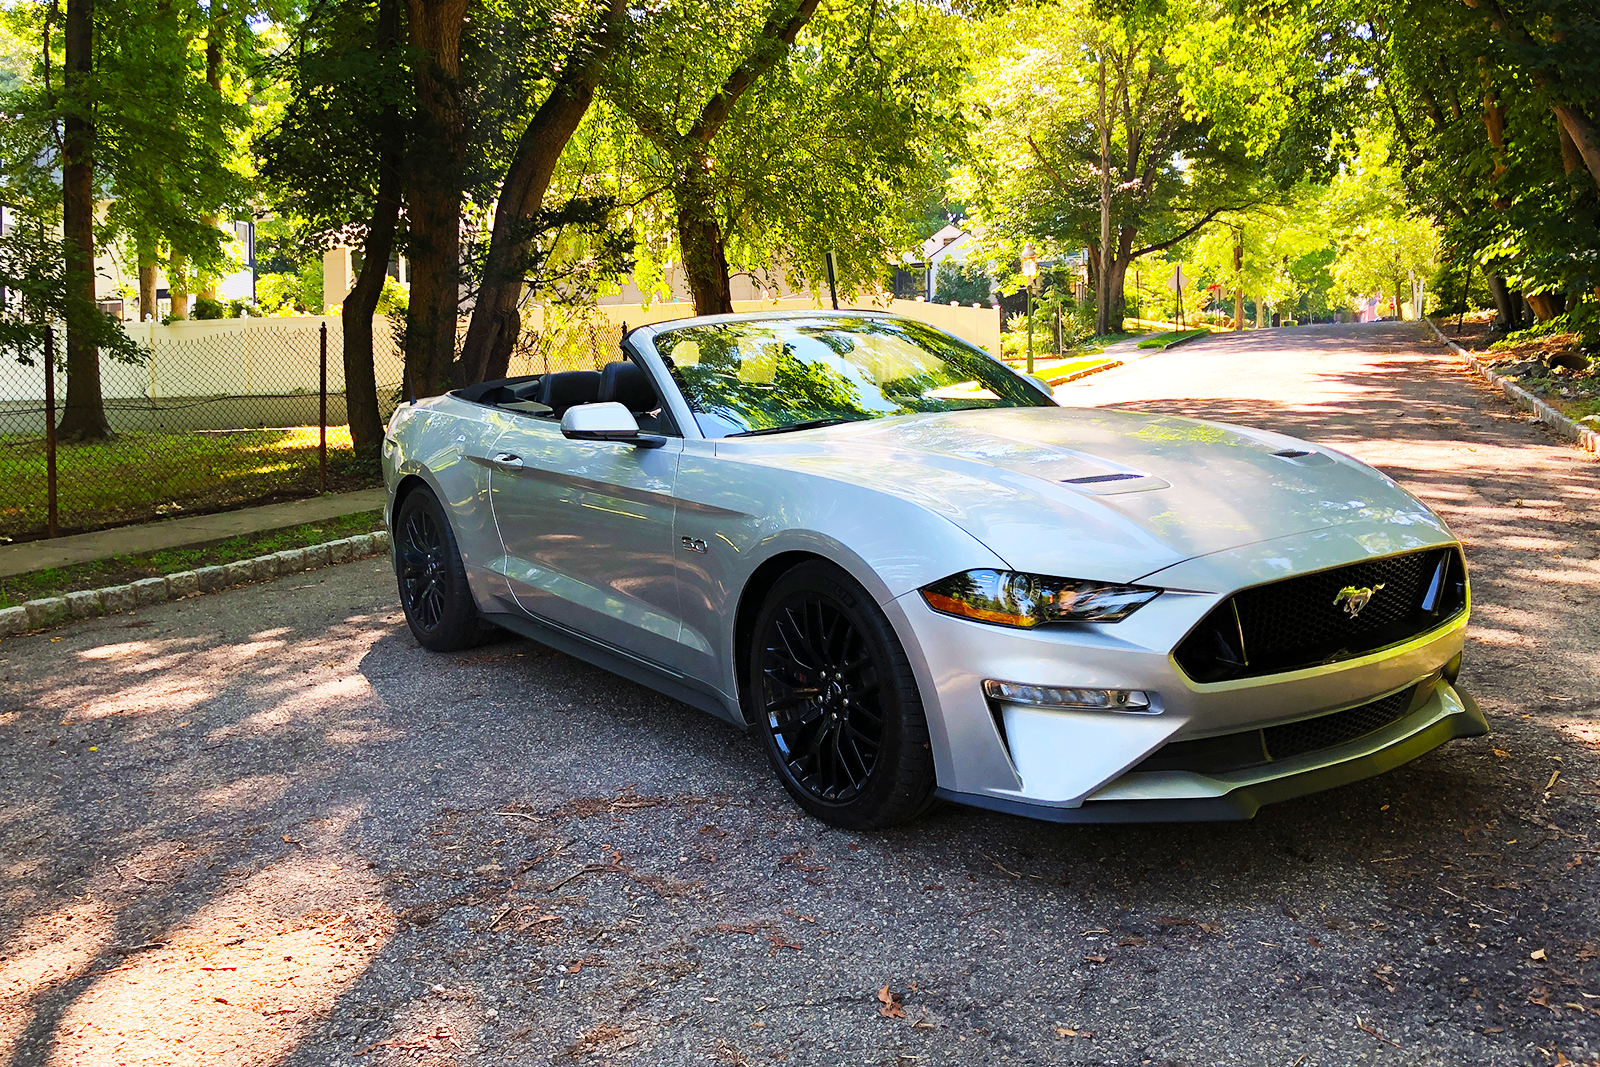 2018 Ford Mustang Gt Premium Convertible Review All You Wanna Do Is Ride